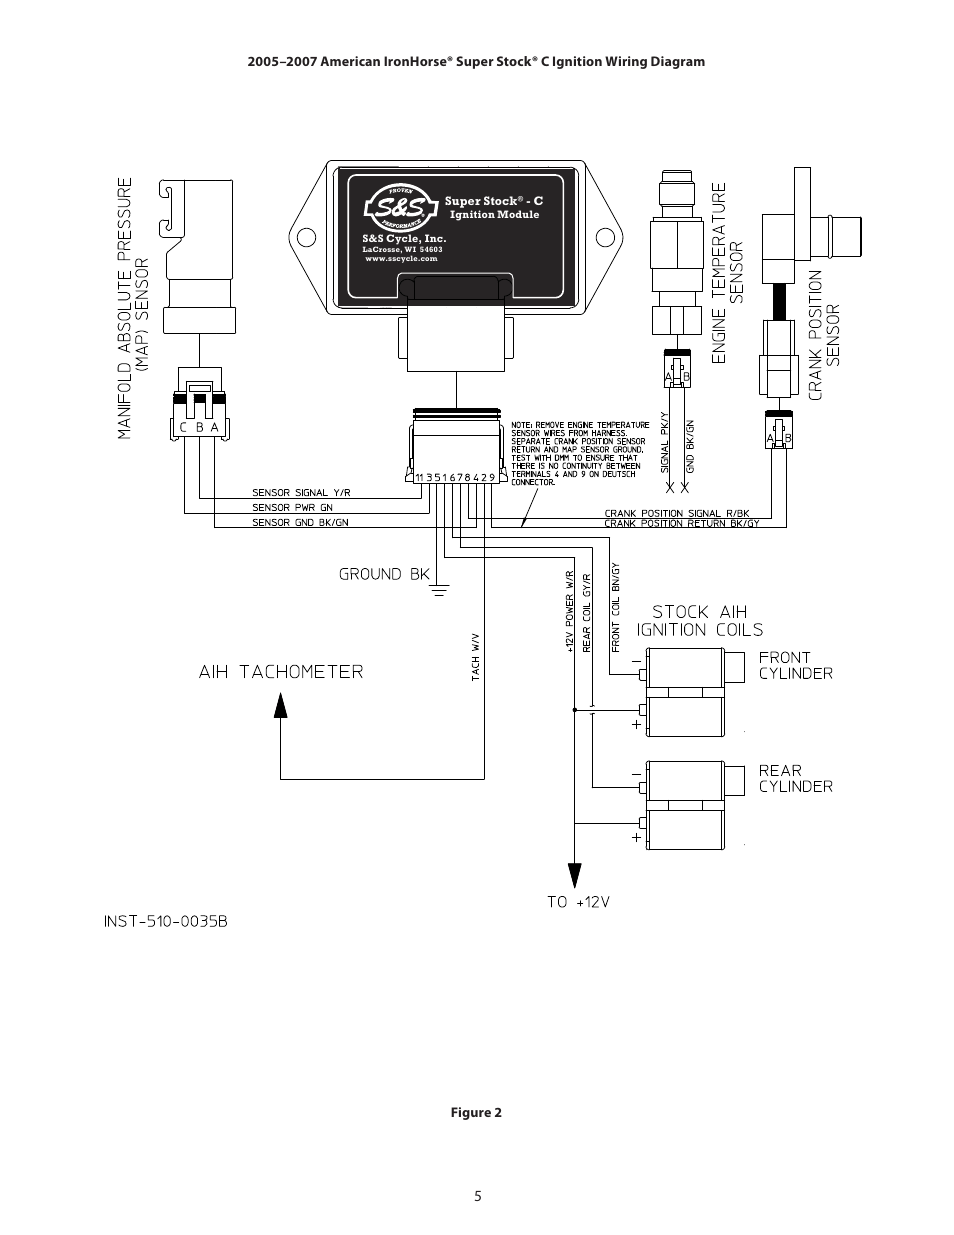 ss cycle super stock c ignition in carbureted 20042007 american ironhorse motorcycles page5?resize\\\\\\\\\\\\\\\\\\\\\\\\\\\\\\\=665%2C861 motorcycle tach wiring diagram motorcycle voltage regulator motorcycle tachometer wiring diagram at crackthecode.co